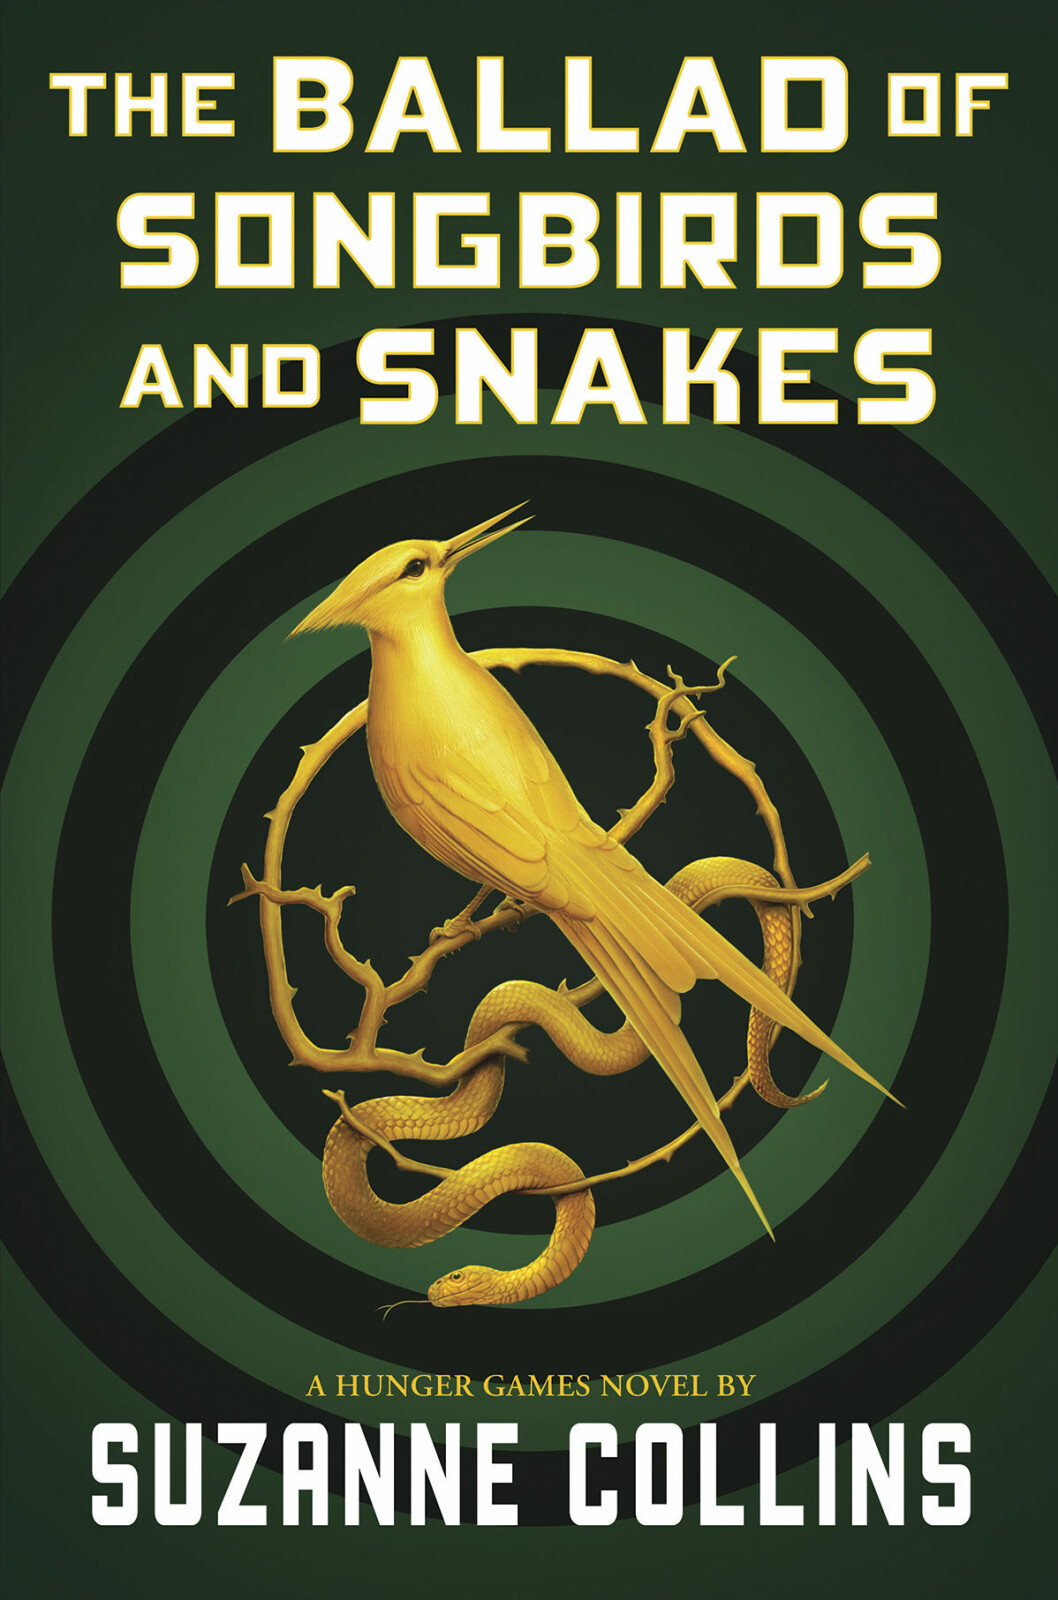 The Ballad of songbirds and snakes.